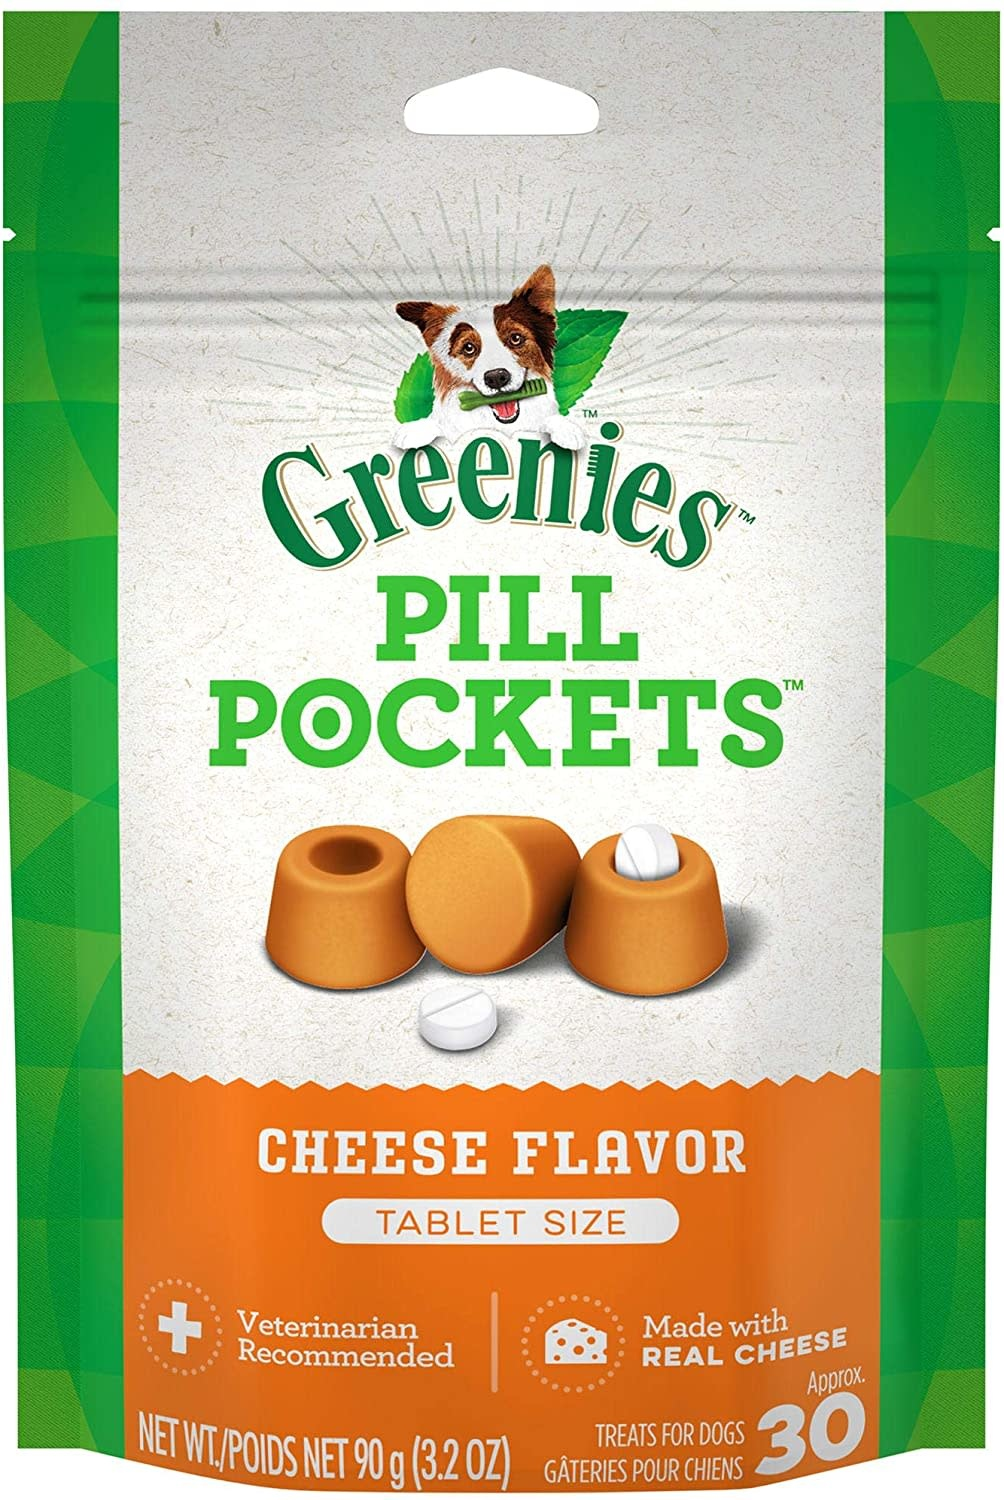 Greenies Greenies Pill Pocket Cheddar 3.2oz